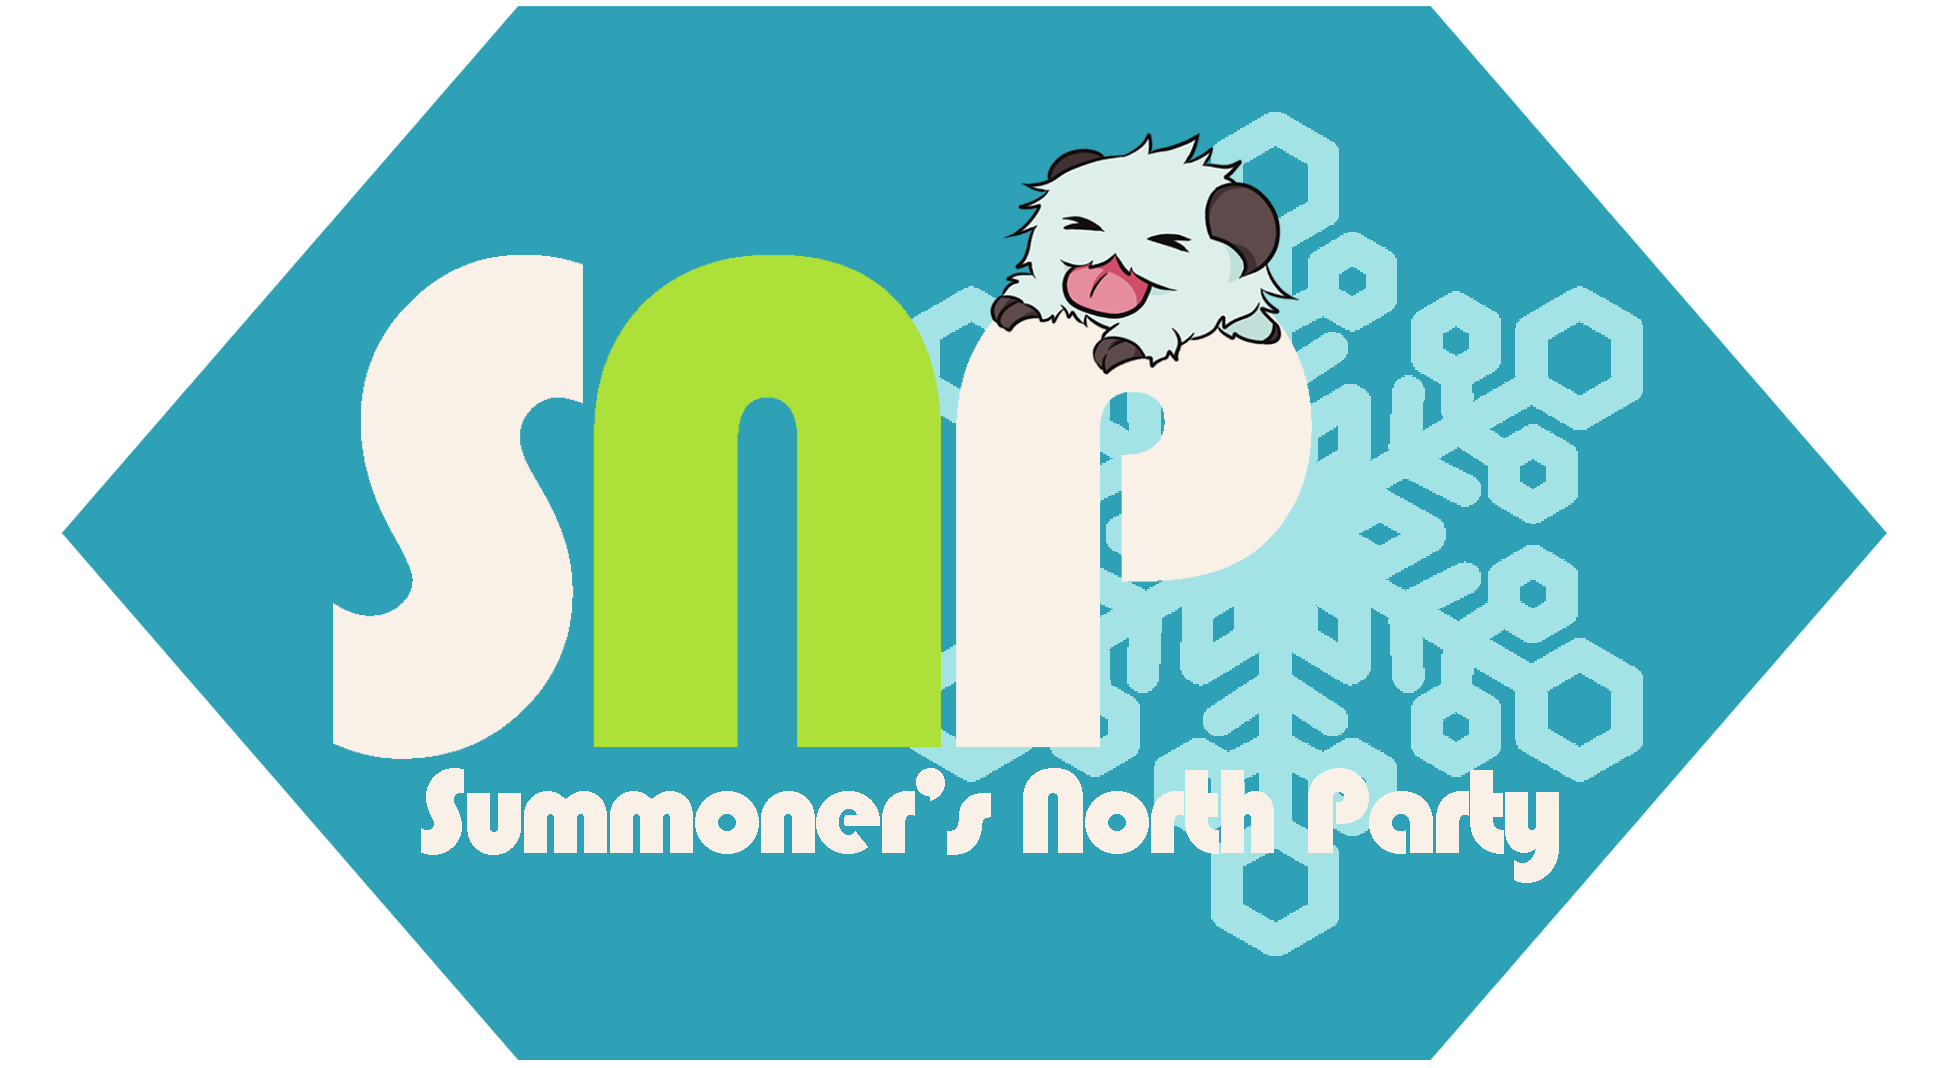 Summoner's North Party